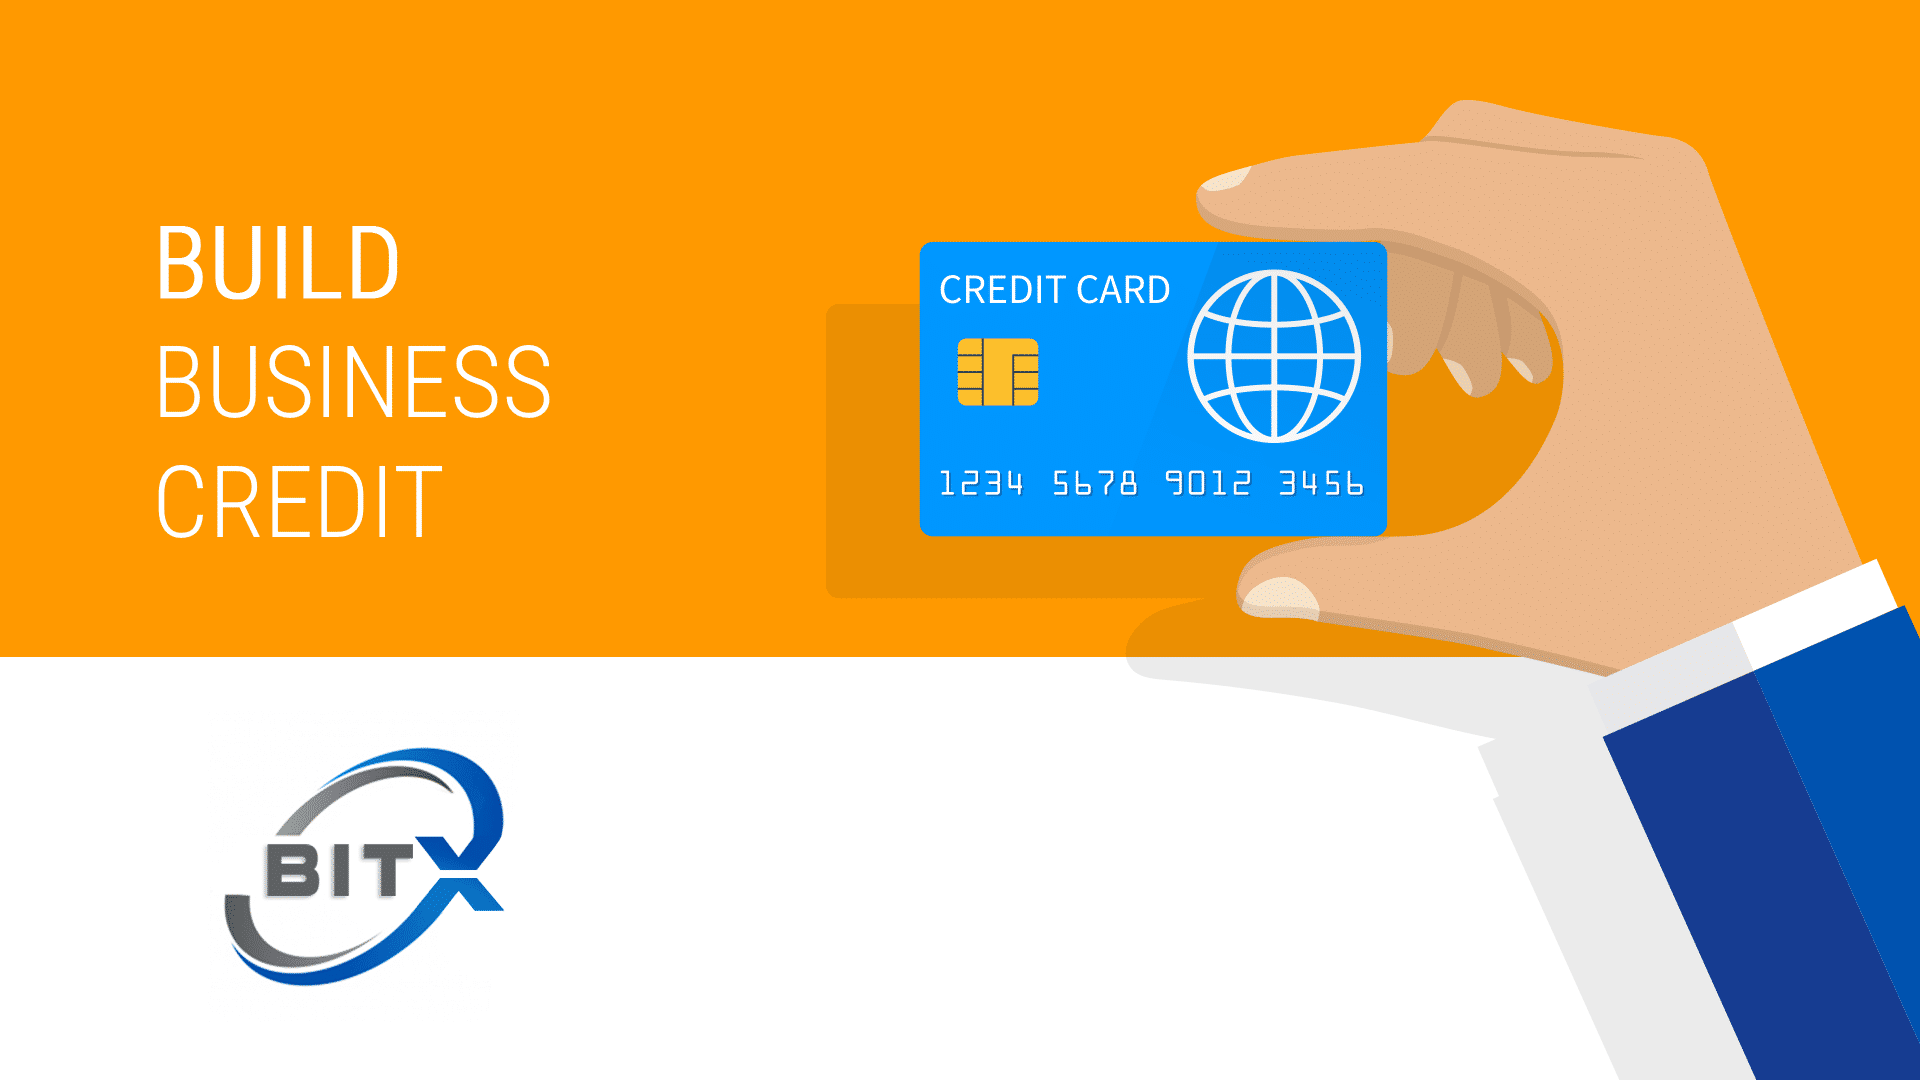 why its important to build business credit - Apply For Business Credit Card With Duns Number